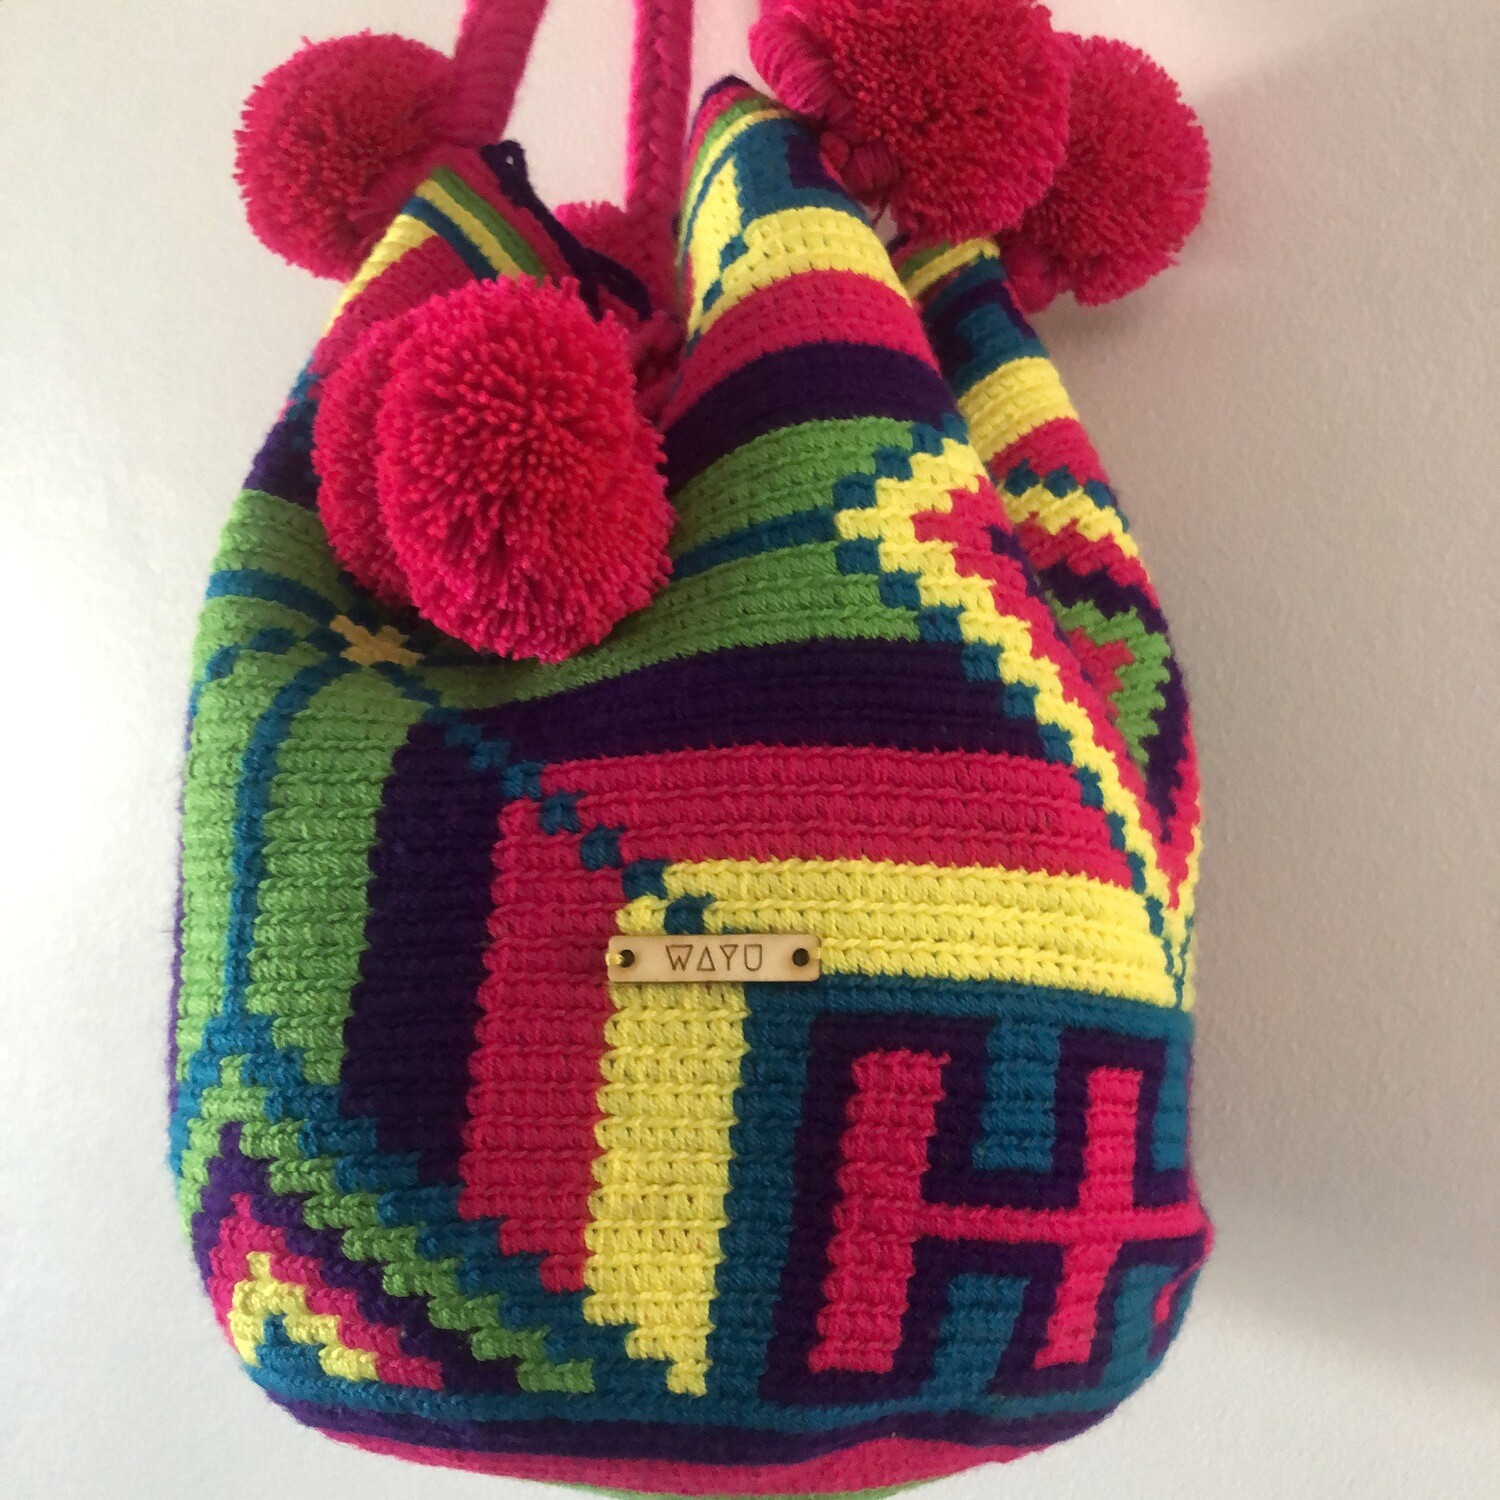 Rainbow Wayuu bag